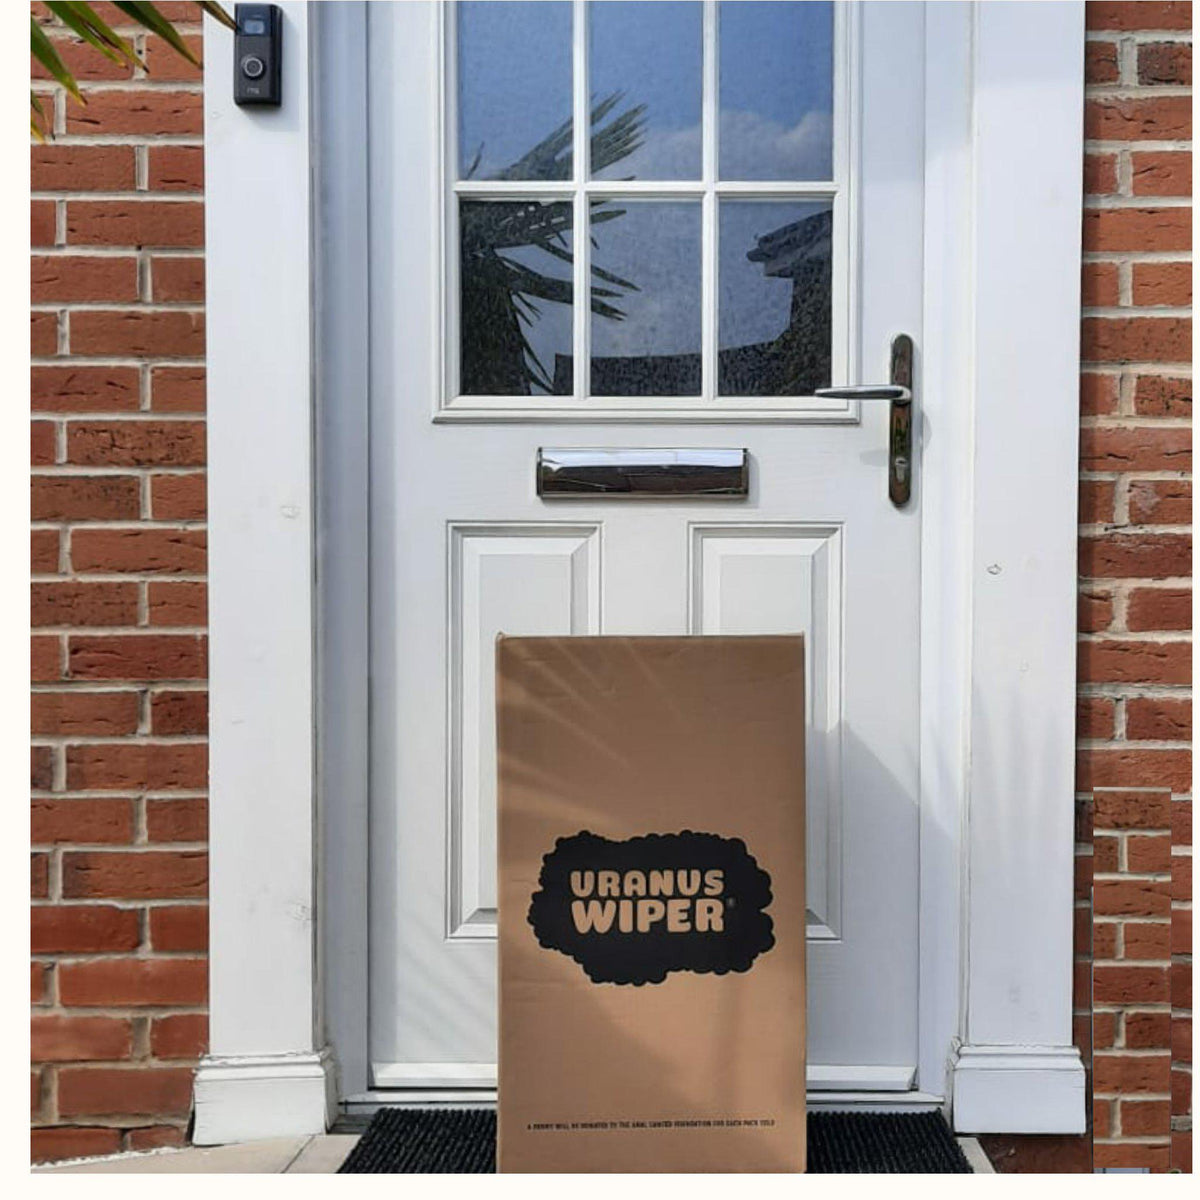 Uranus Wiper Toilet Roll Delivery to white UK household door with bricks